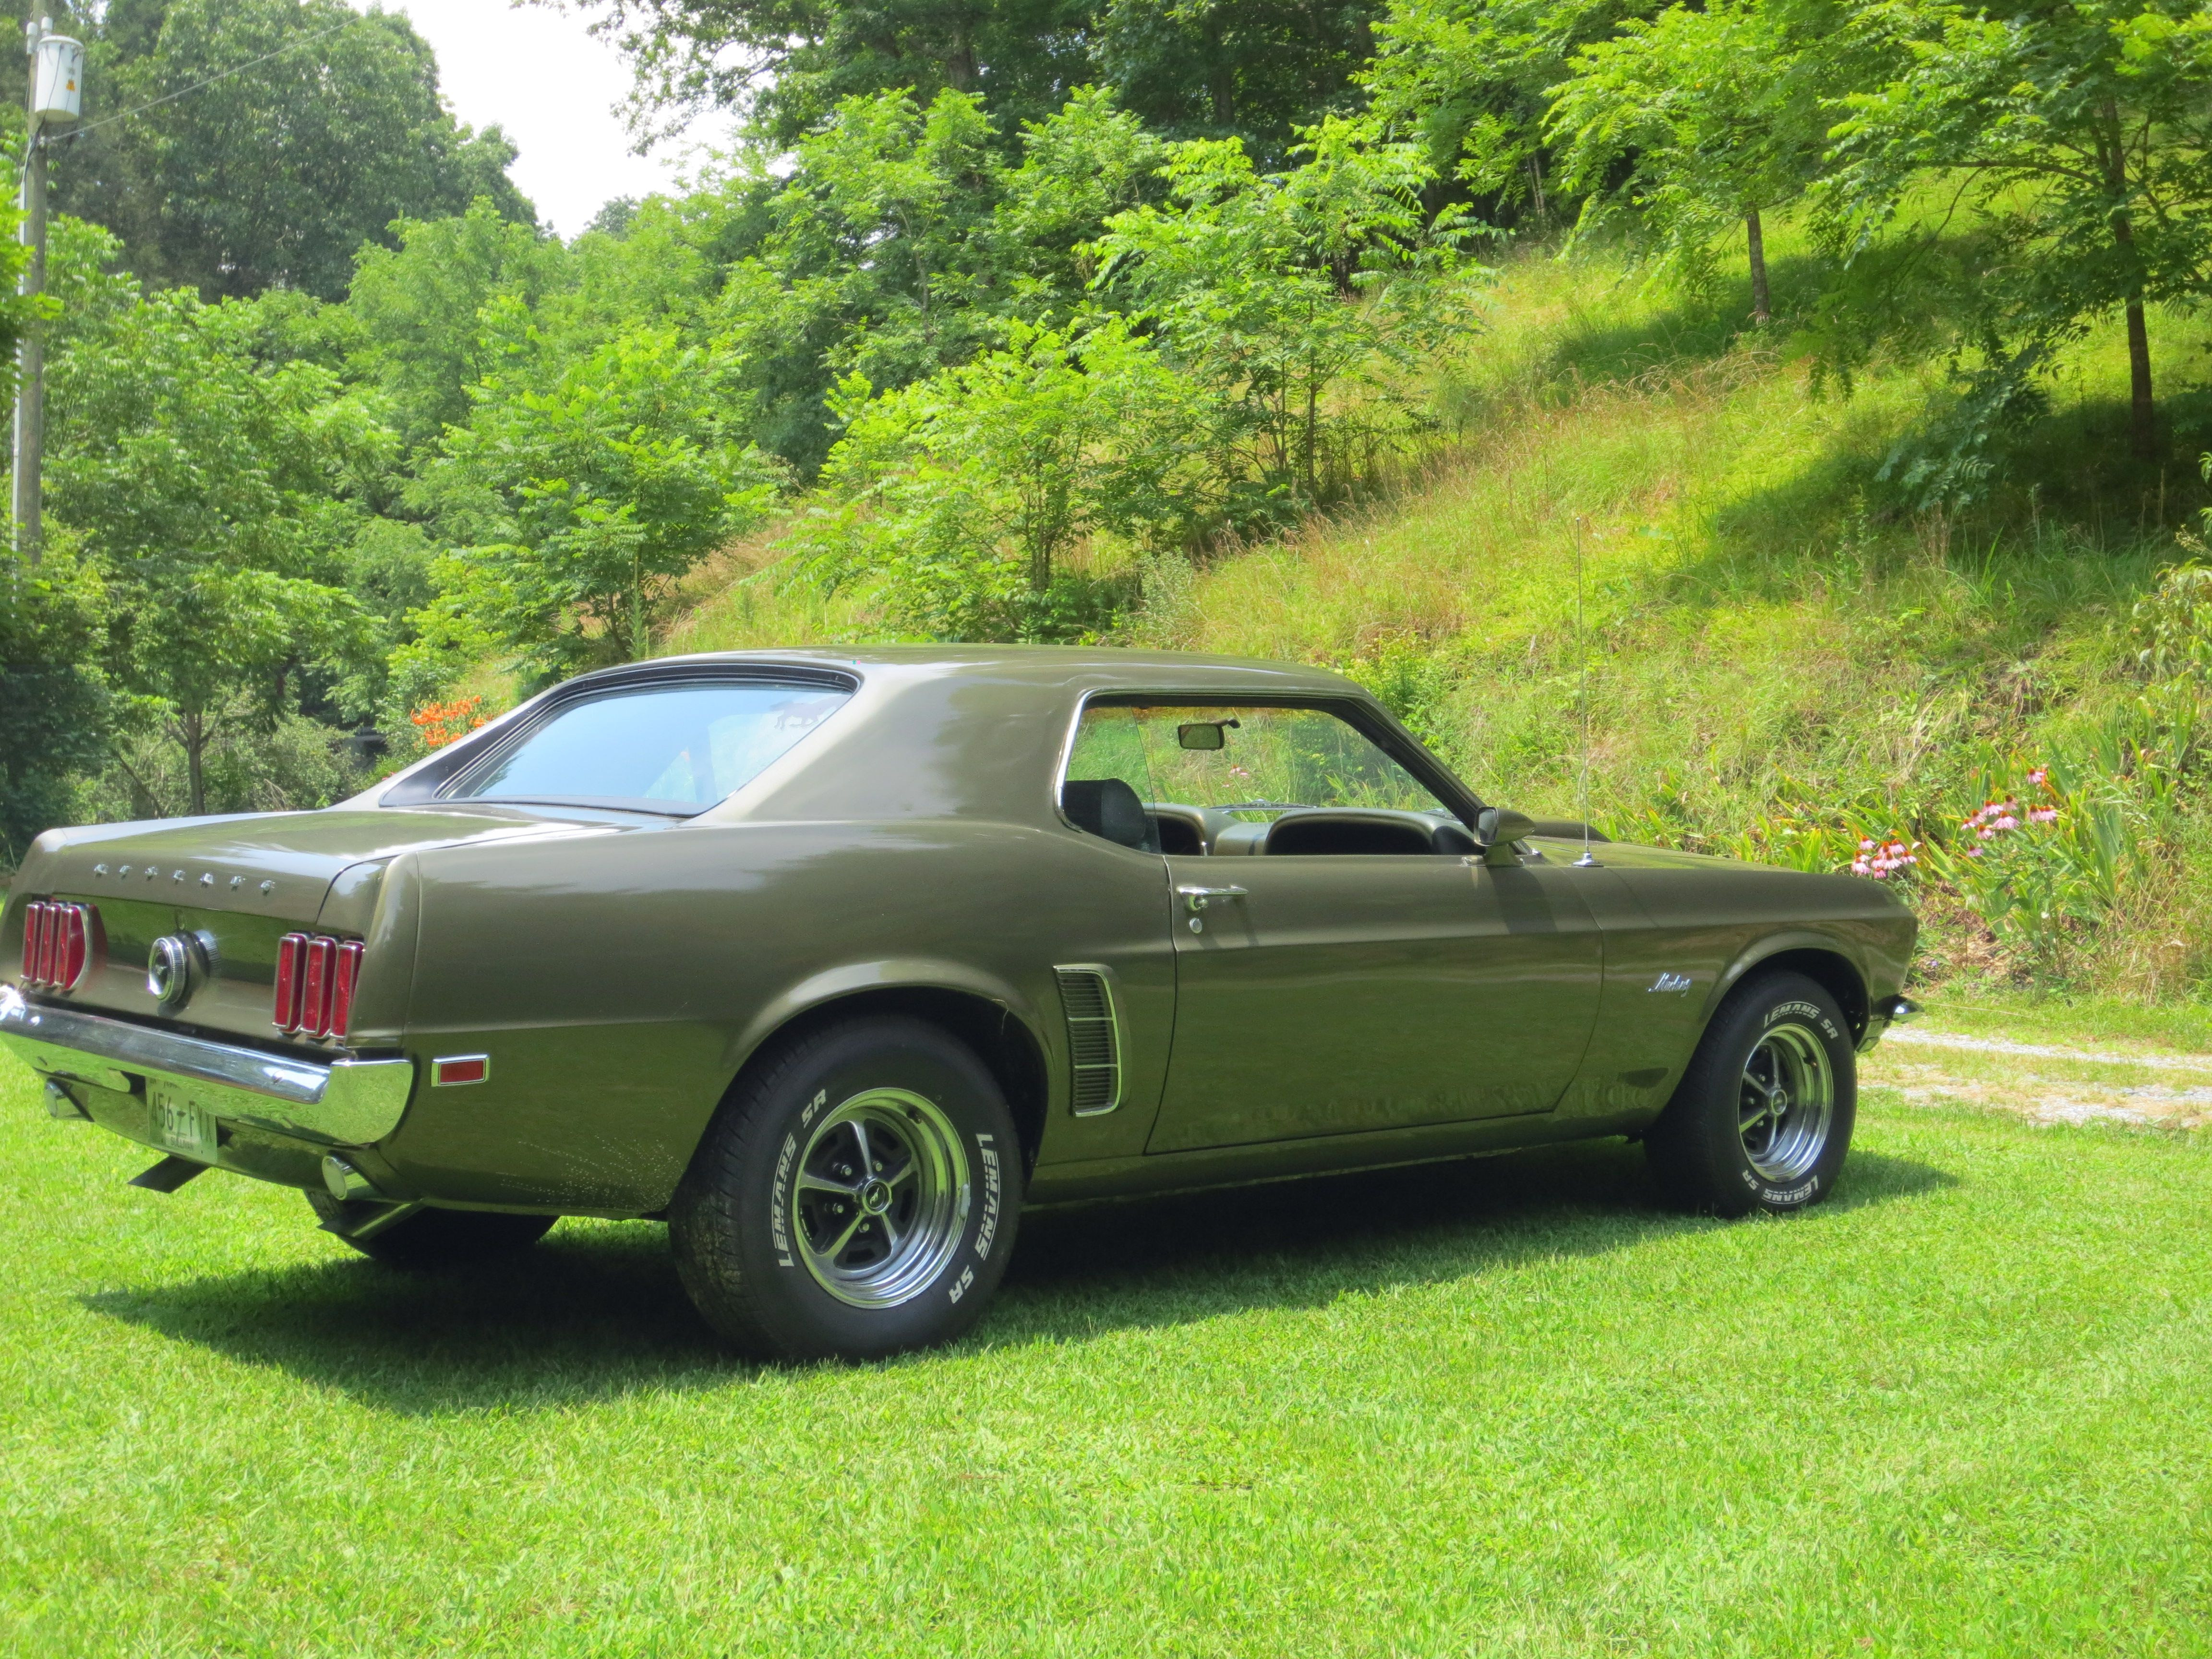 1969 Mustang This Is The Exact Same Color As The One My Grandfather Left Me Only Mine Was A Grande And Had A Vinyl To Mustang Mustang Fastback Ford Mustang